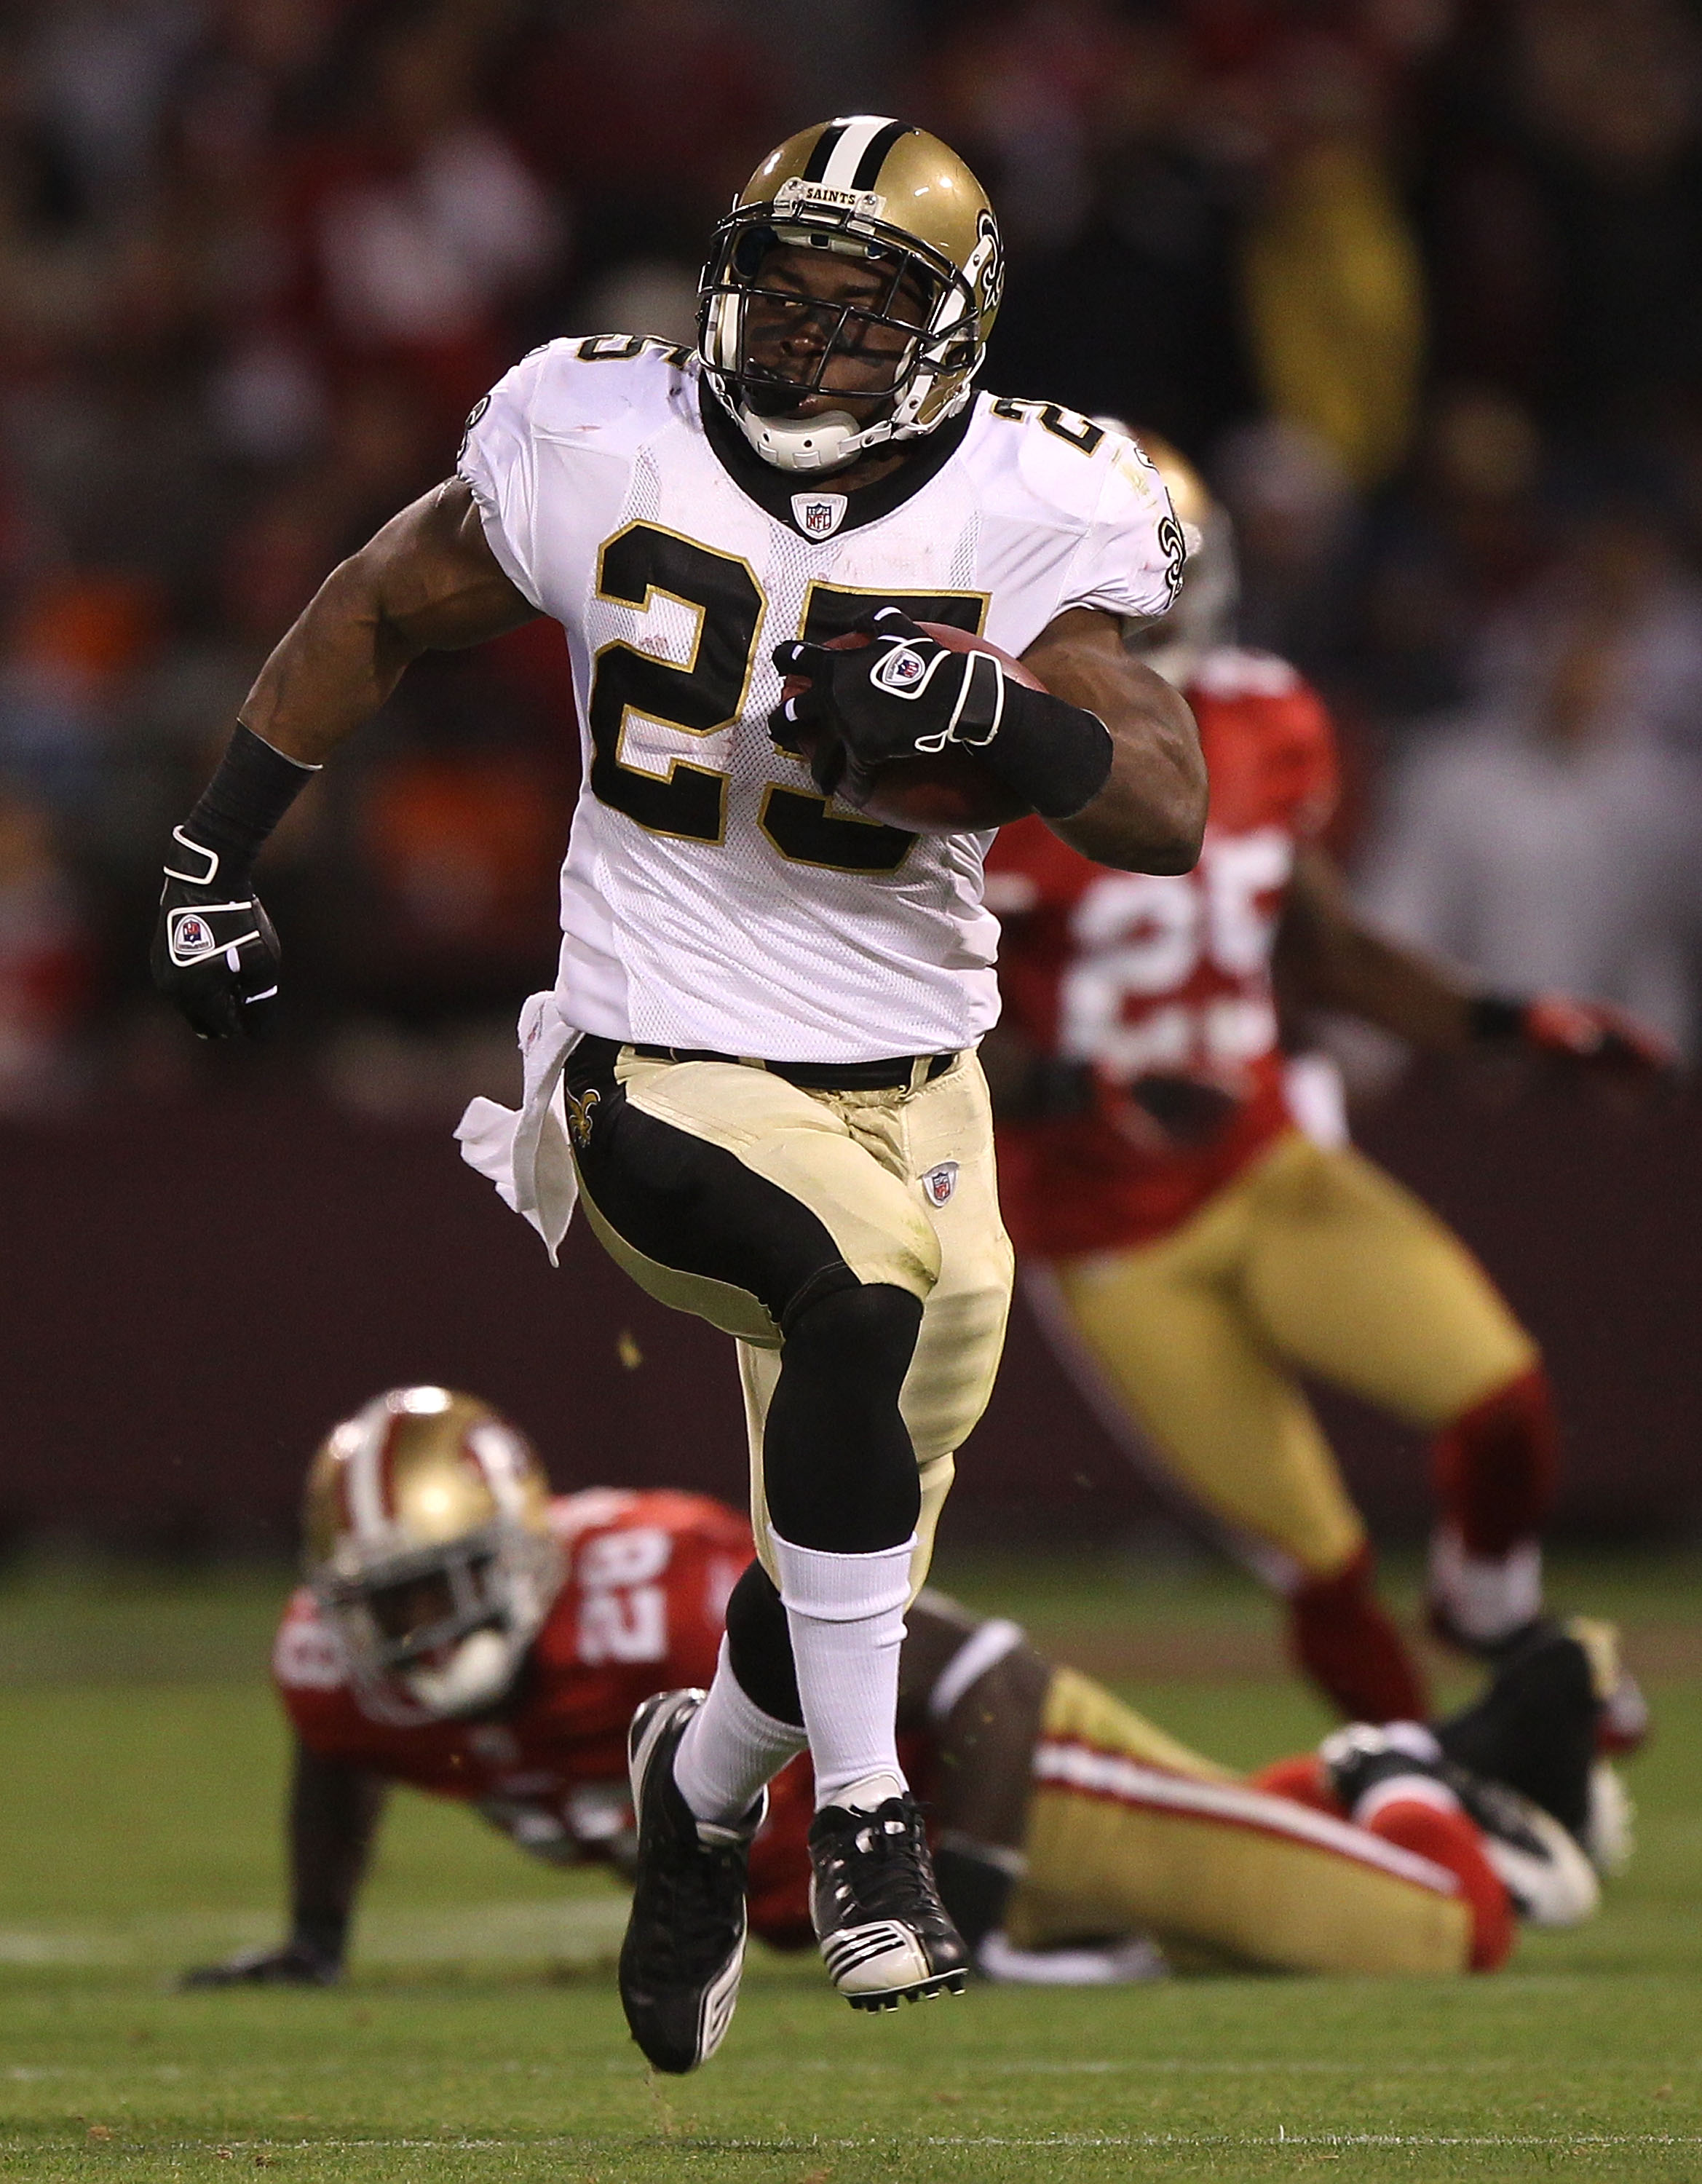 SAN FRANCISCO - SEPTEMBER 20:  Reggie Bush #25 of the New Orleans Saints runs against the San Francisco 49ers during an NFL game at Candlestick Park on September 20, 2010 in San Francisco, California.  (Photo by Jed Jacobsohn/Getty Images)